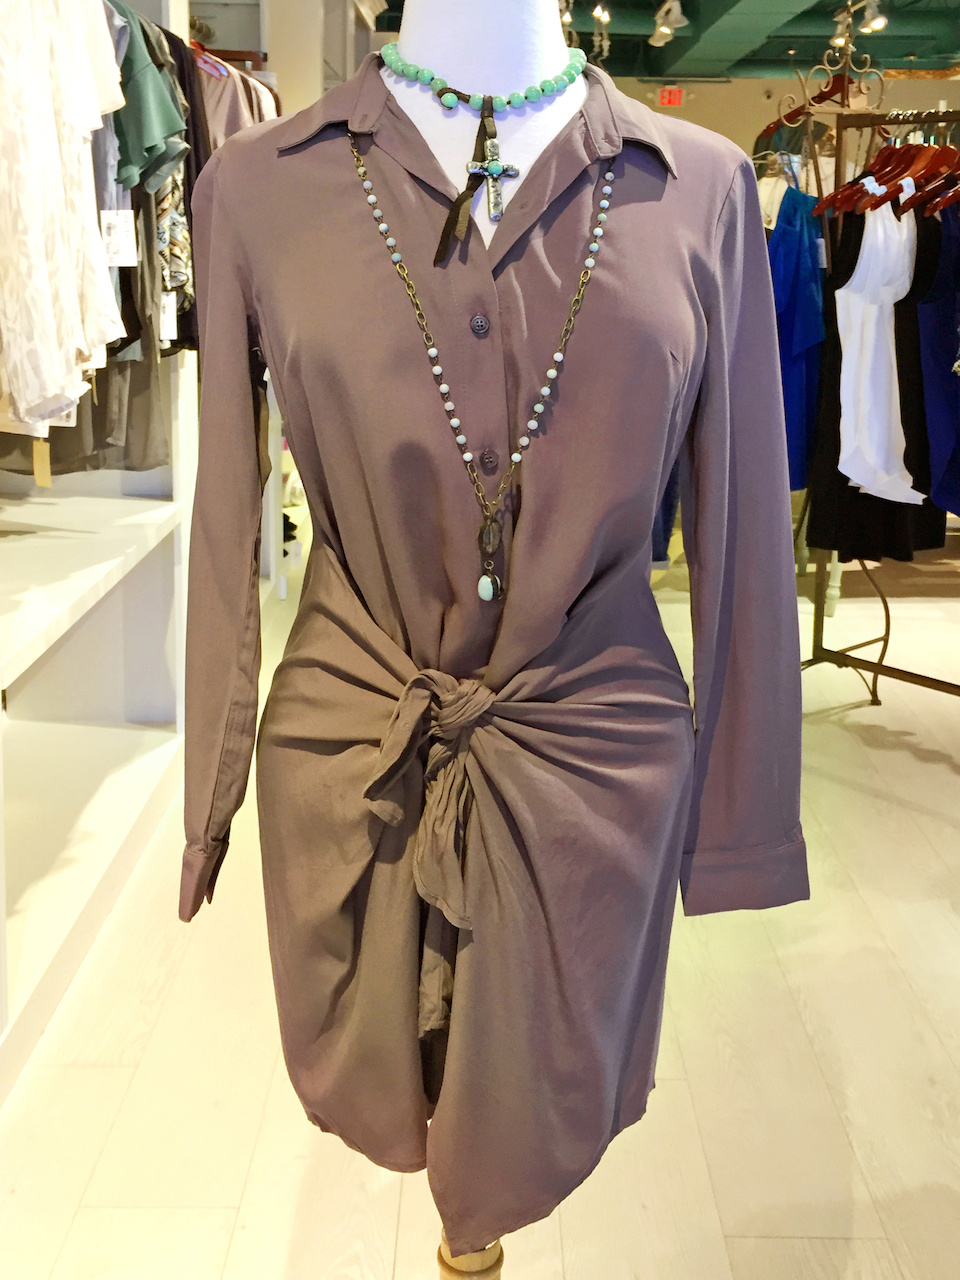 Frolic Boutique shirtdress StyleBlueprint Atlanta